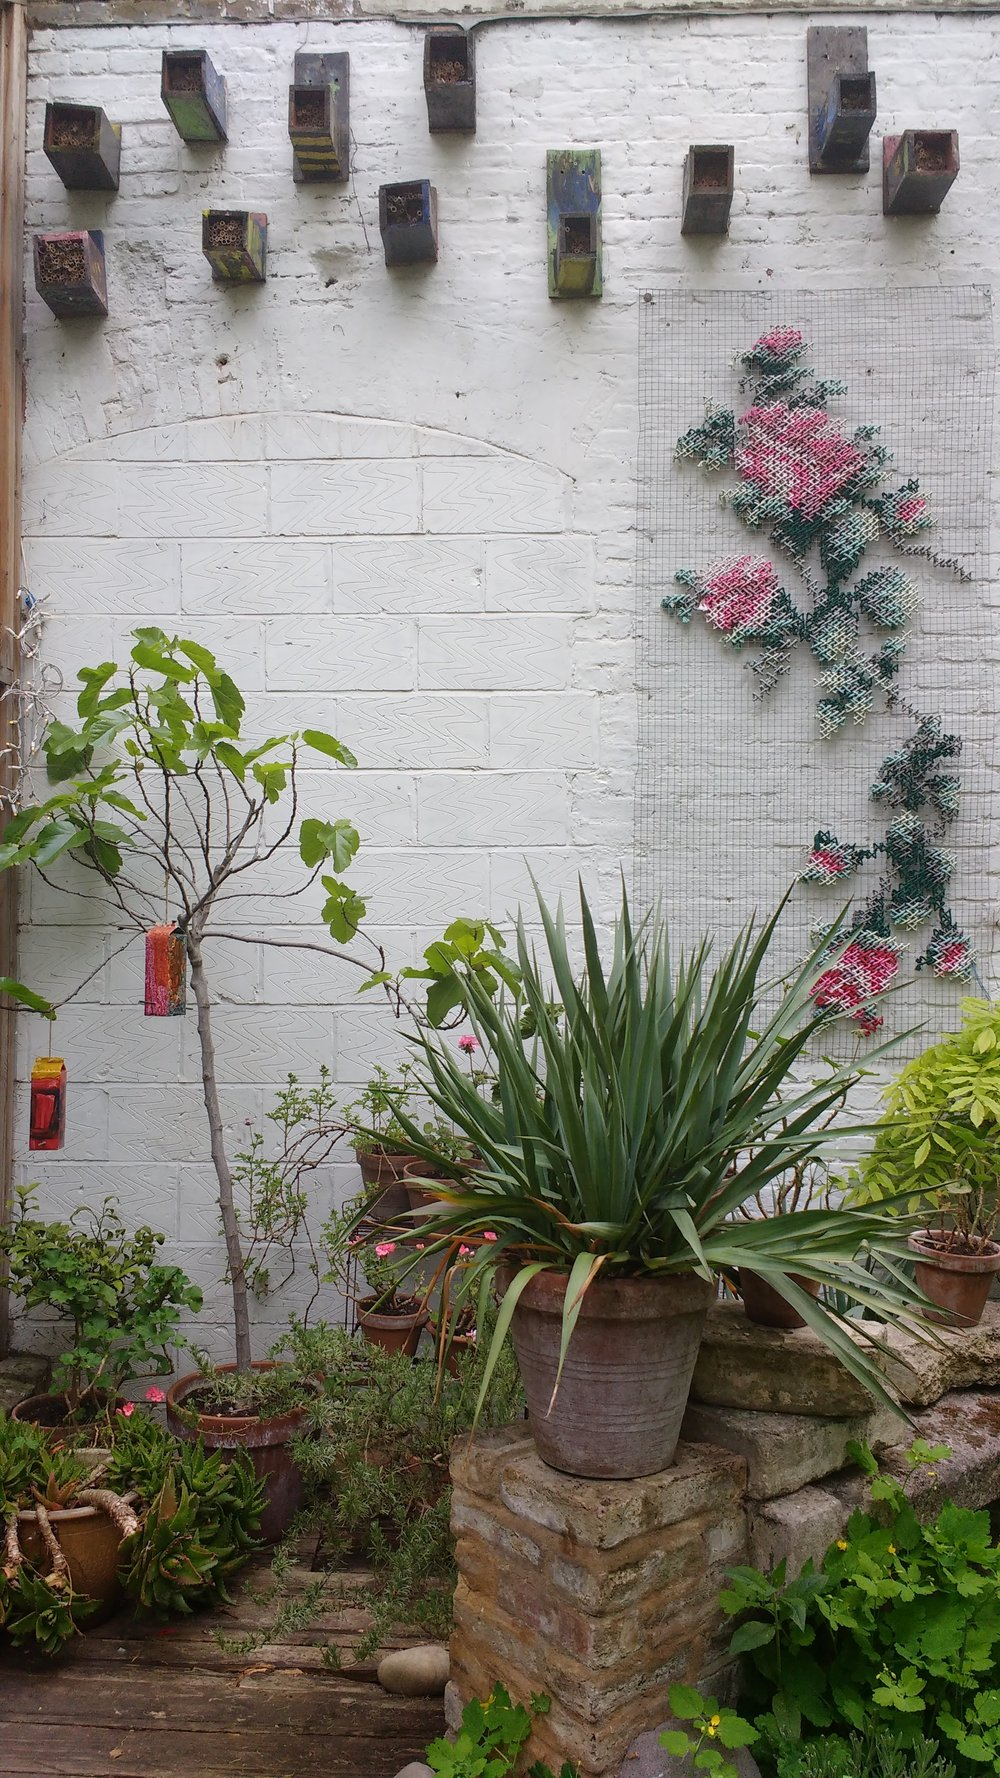 A home for birds, bees and artists alike: cross stitch, figs, geraniums and insect hotels